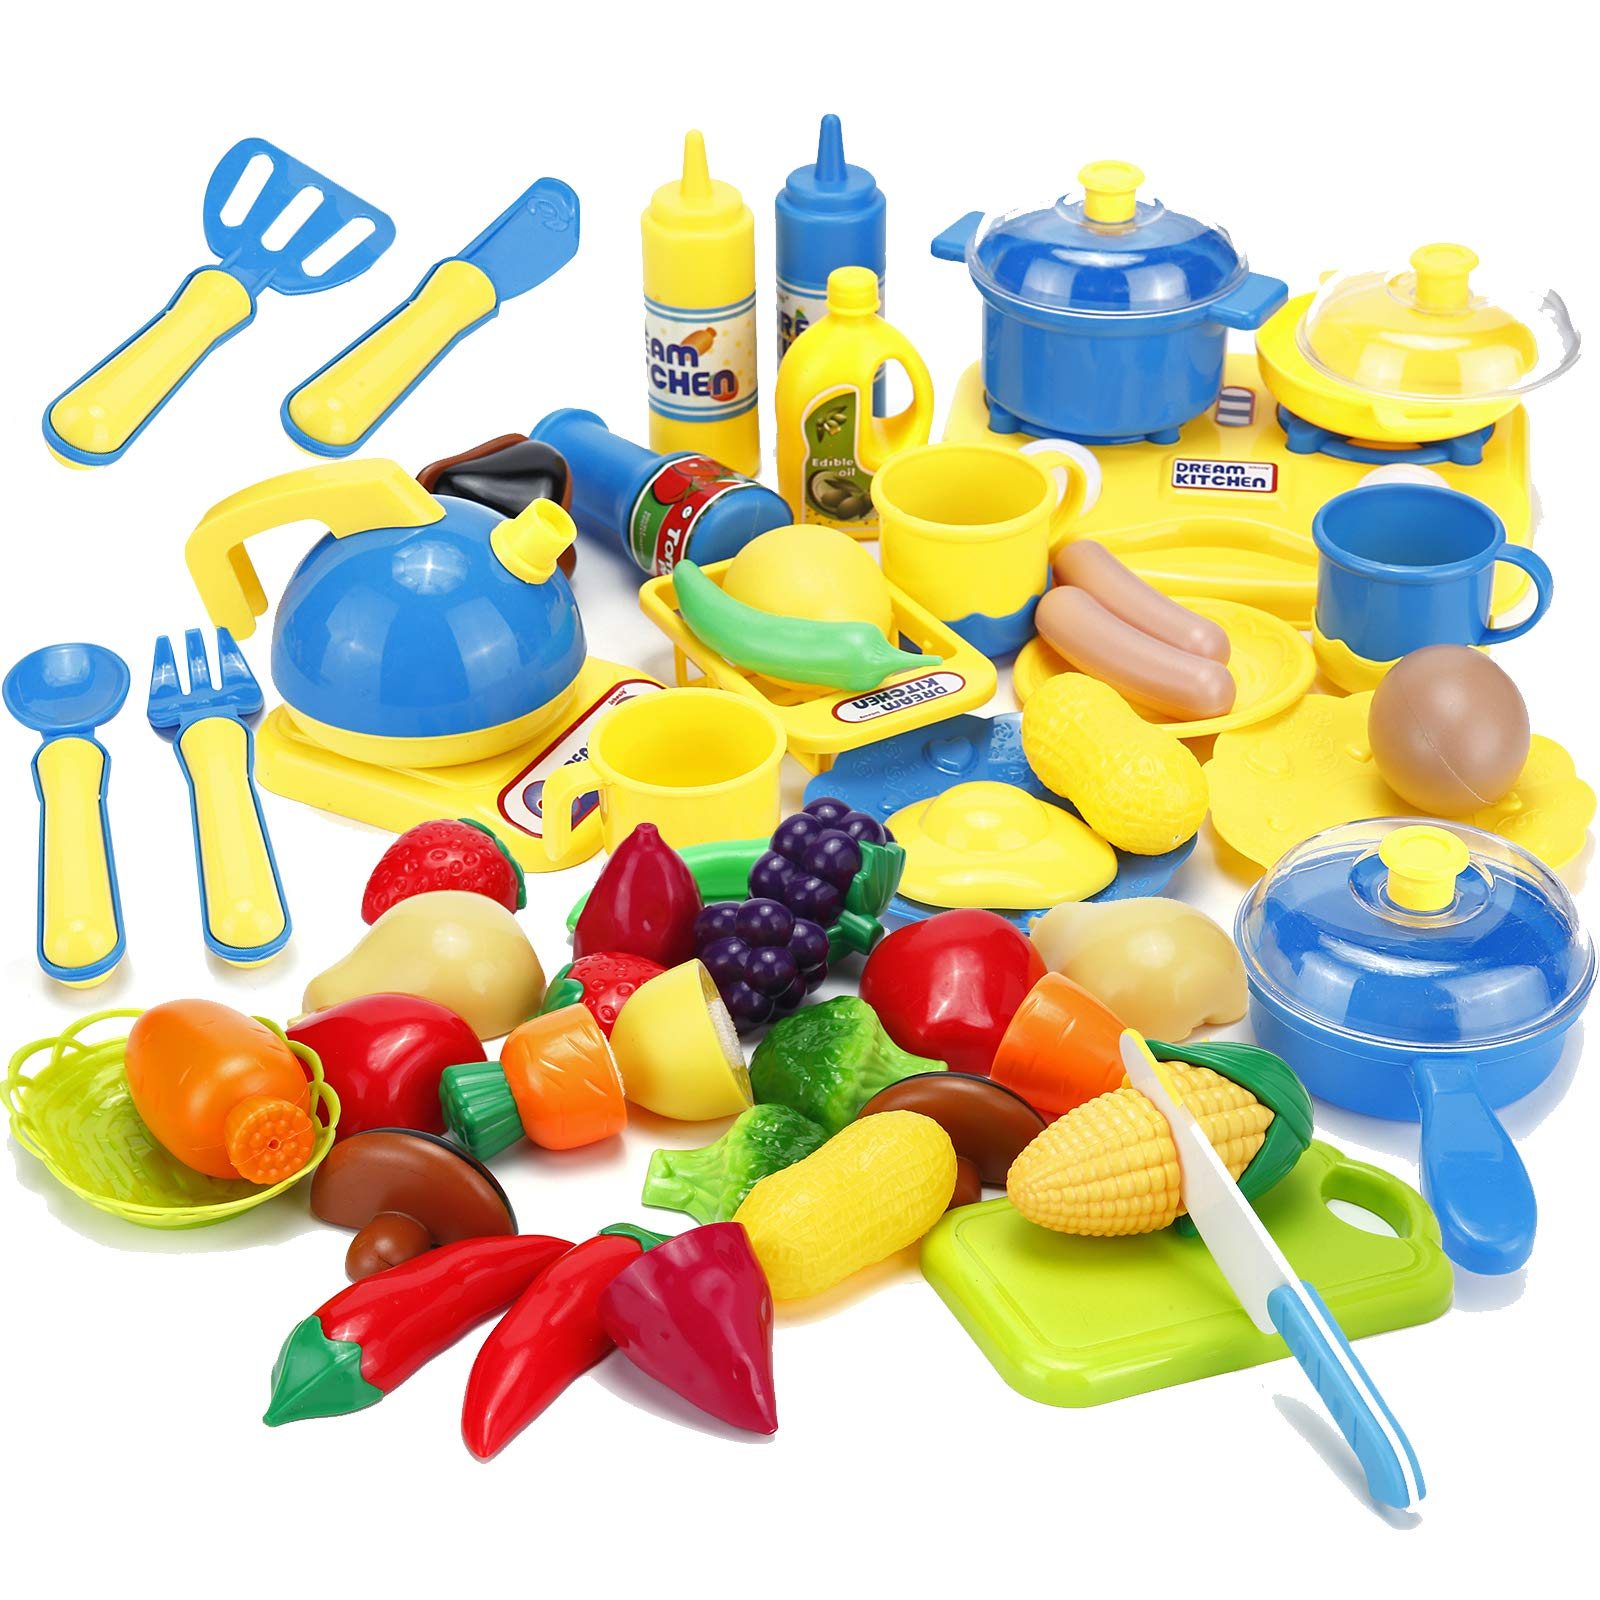 Kitchen Cooking Toys Cutting Fruits Vegetables Pretend Play Food Playset with Stove, Pots and Pans Set Cookware Utensils Accessories for Kids Toddlers Girls Boys Gifts Learning Educational 46pcs by Kimicare